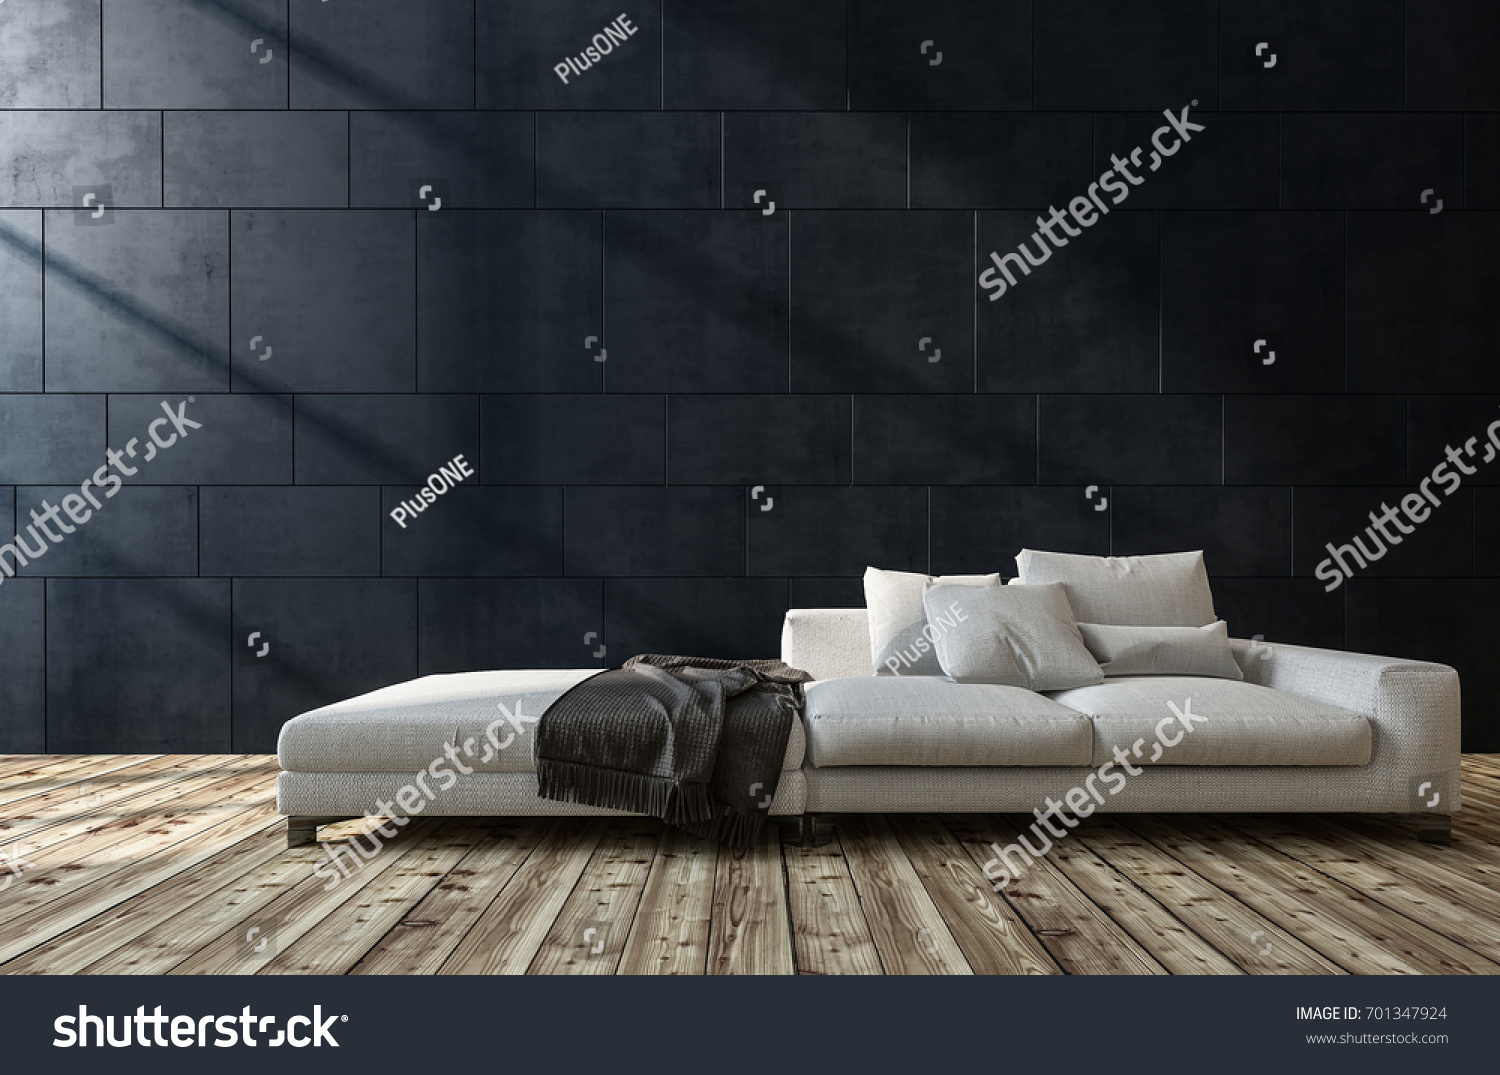 Large Generic White Sofa In A Living Room Interior With Wooden Floor And Dark Grey Brick